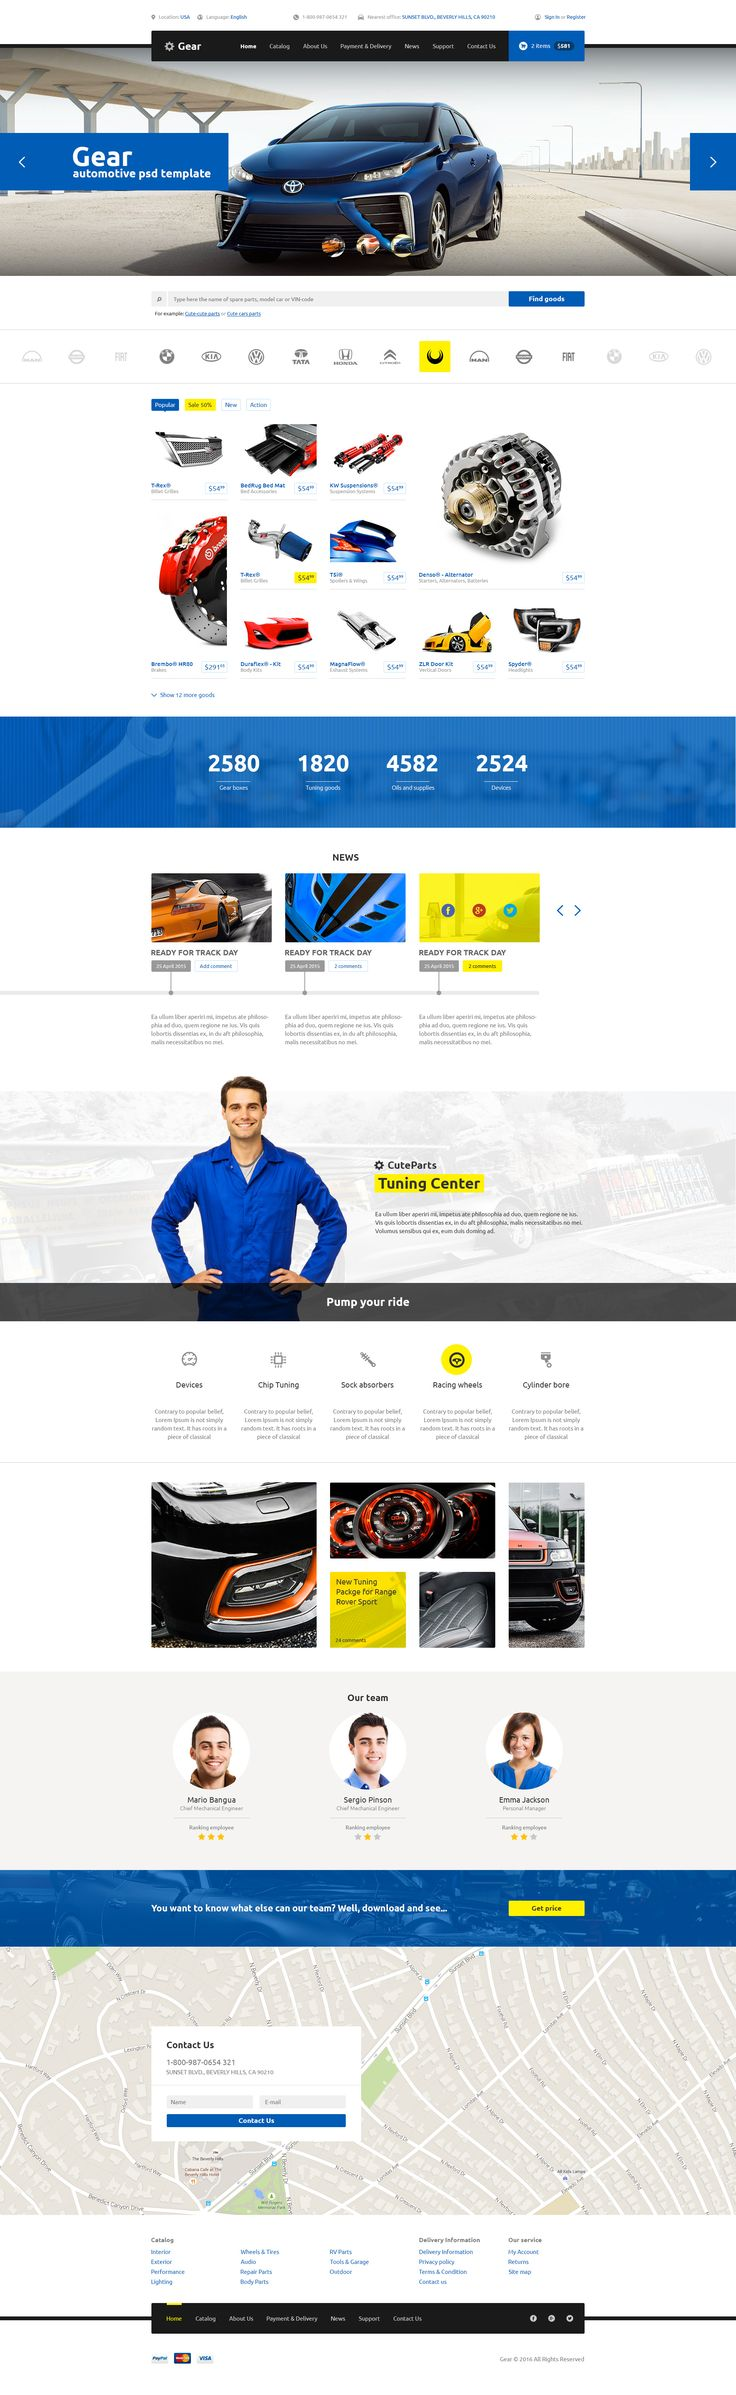 Gear — Automotive Business/Auto Parts Store PSD Template • Download ➝ https://themeforest.net/item/gear-automotive-businessauto-parts-store-psd-template/15346859?ref=pxcr